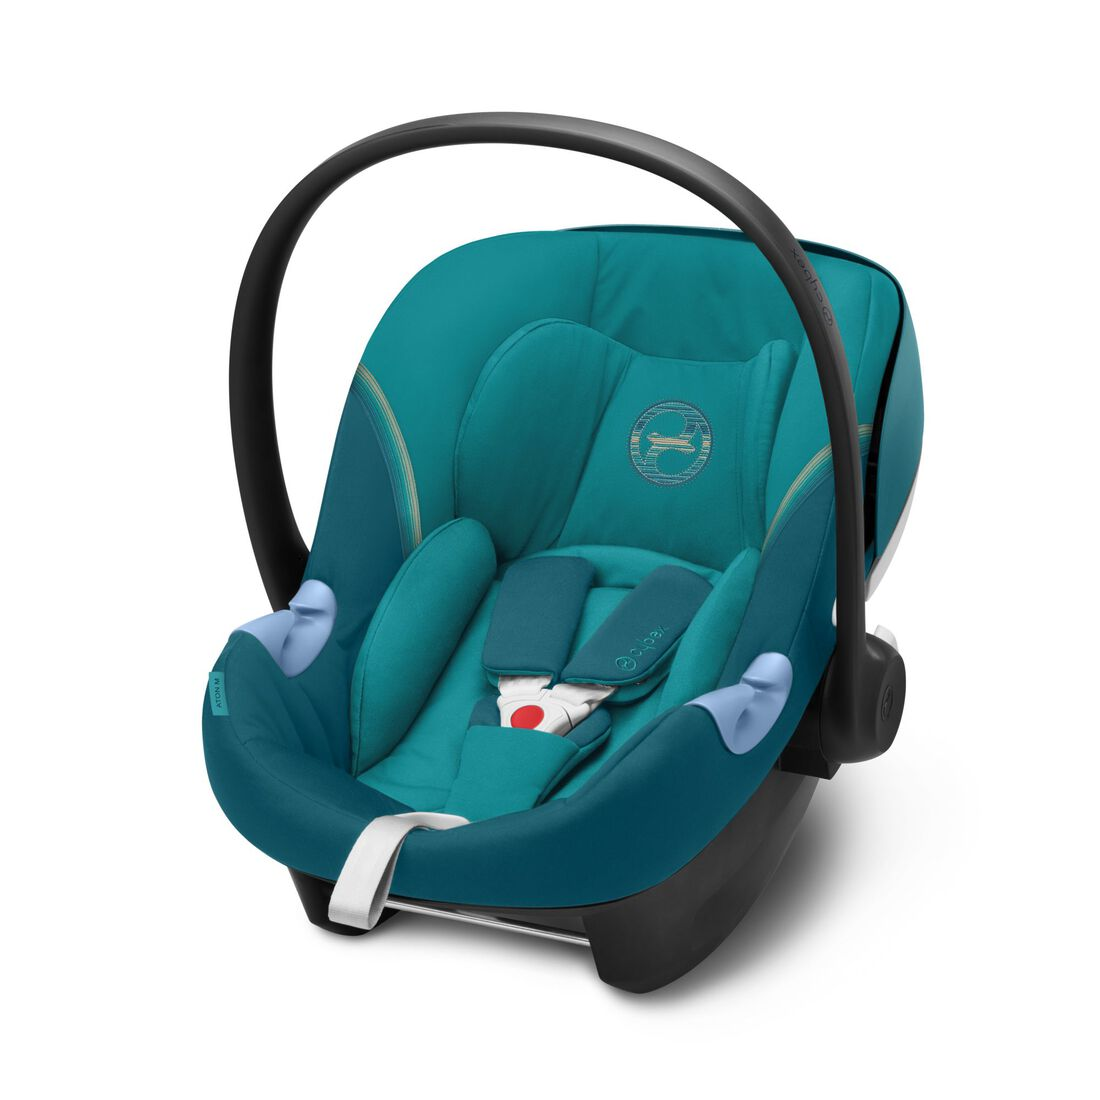 CYBEX Aton M i-Size - River Blue in River Blue large image number 1